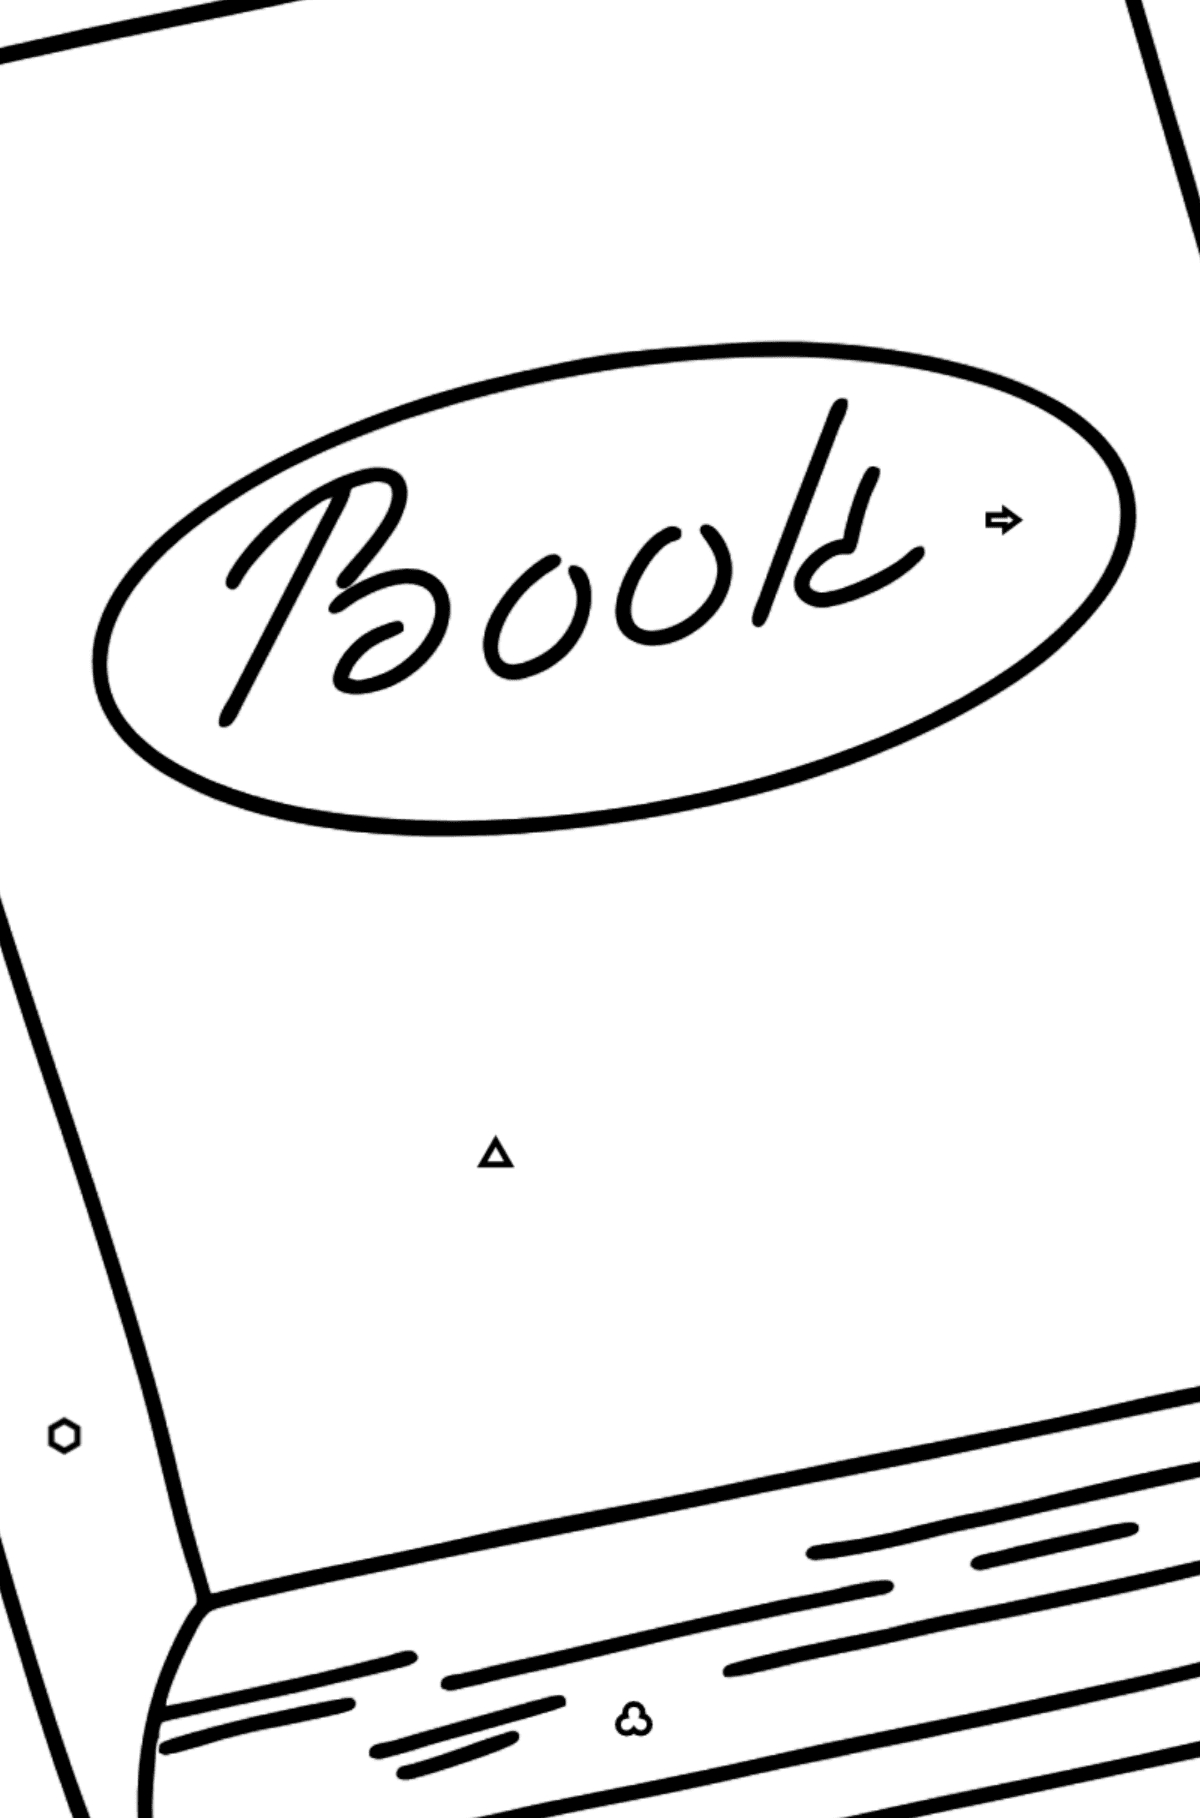 Book coloring page - Coloring by Geometric Shapes for Kids